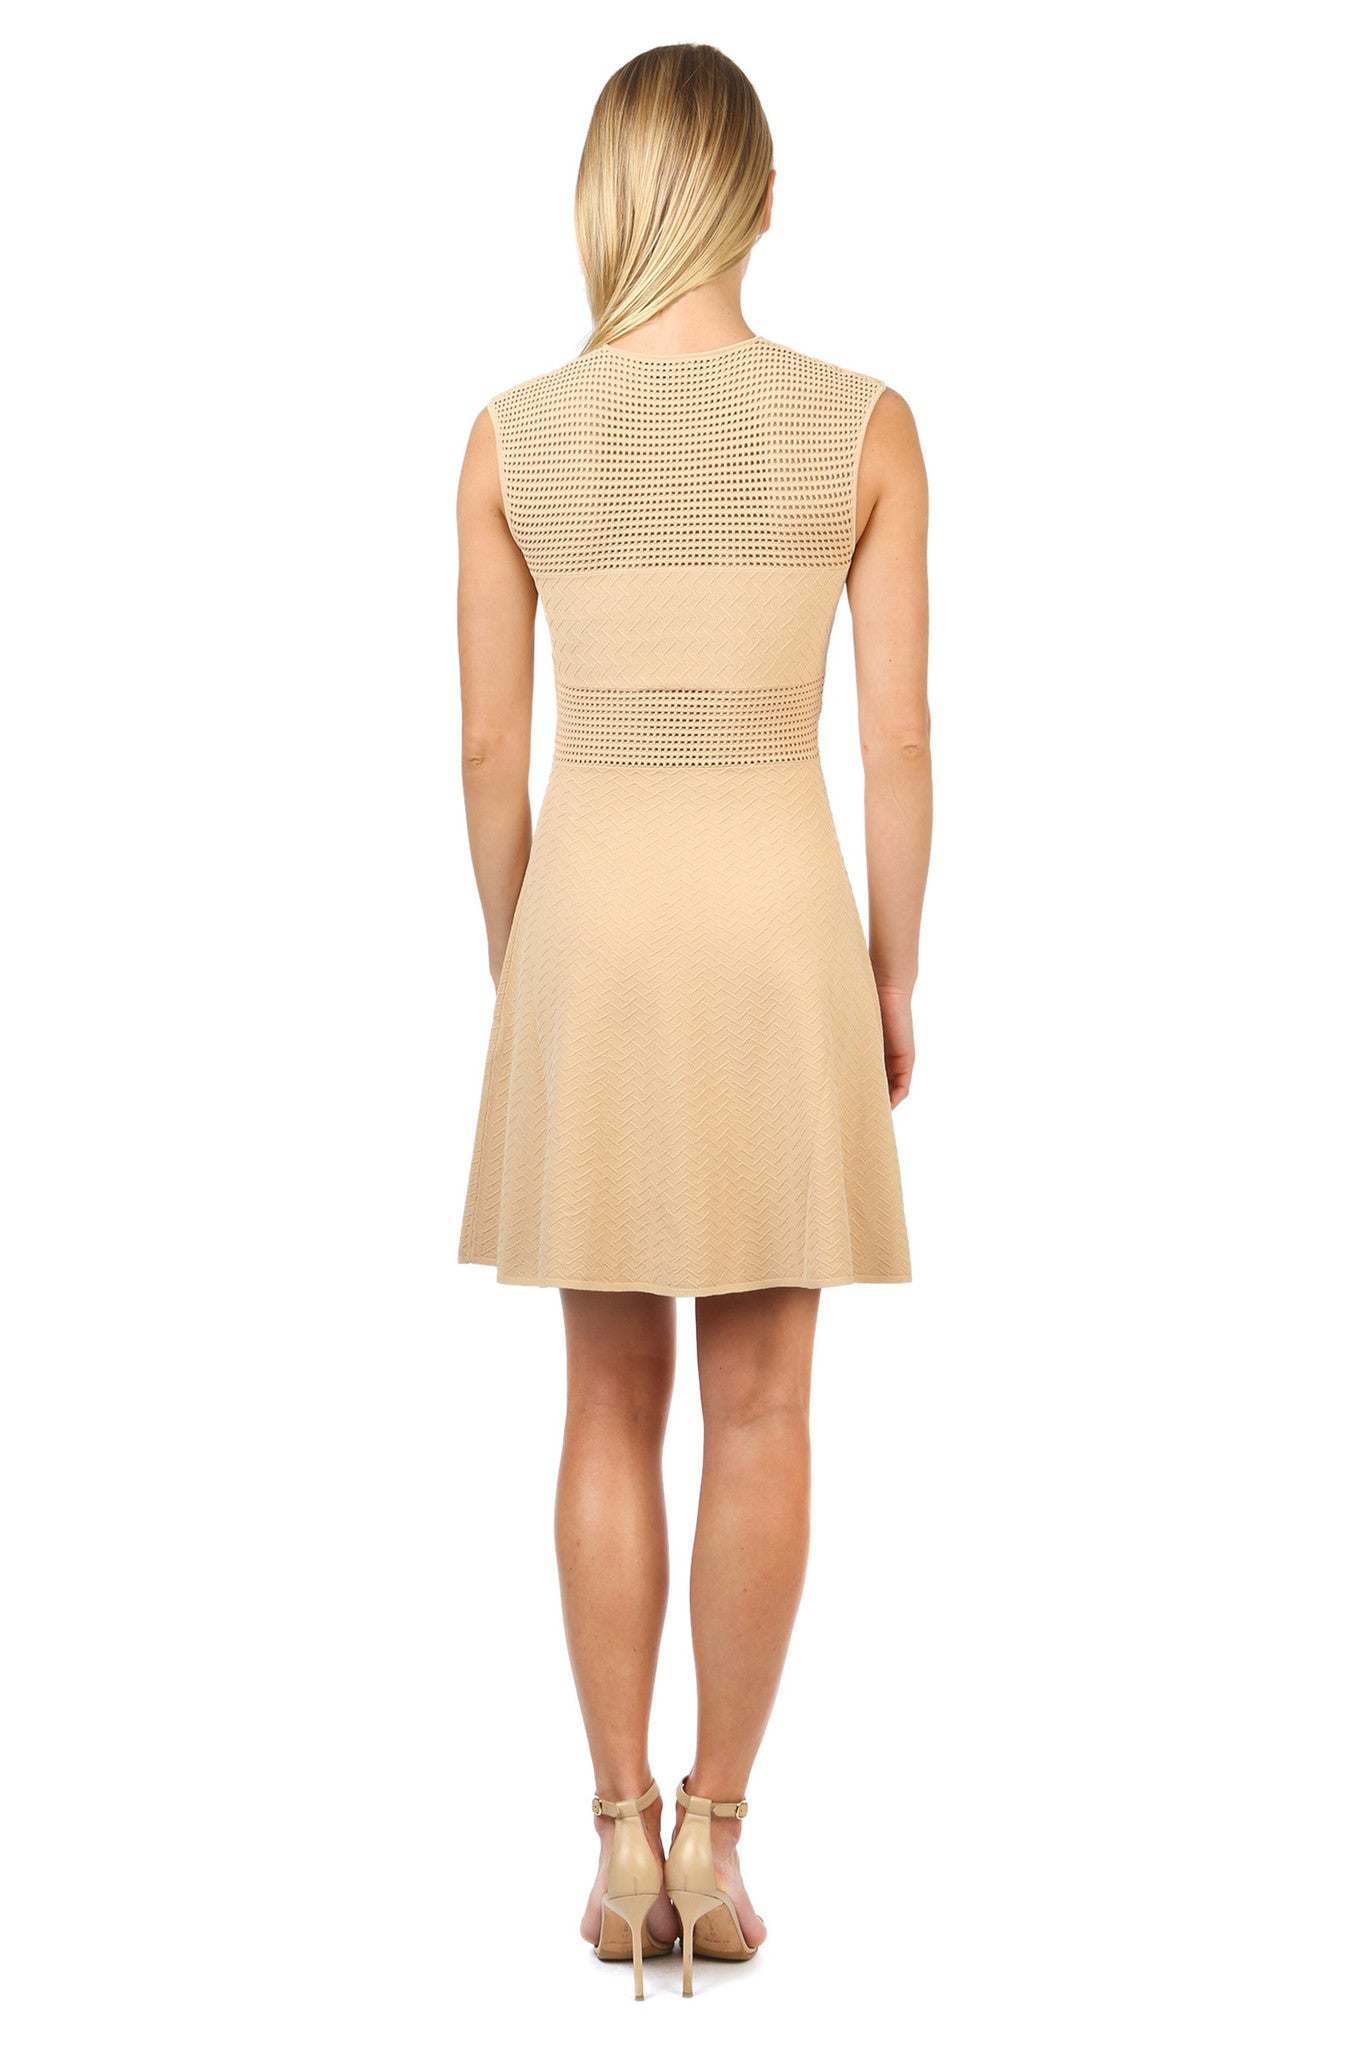 Jay Godfrey Sand Knit Body Con Dress - Back View